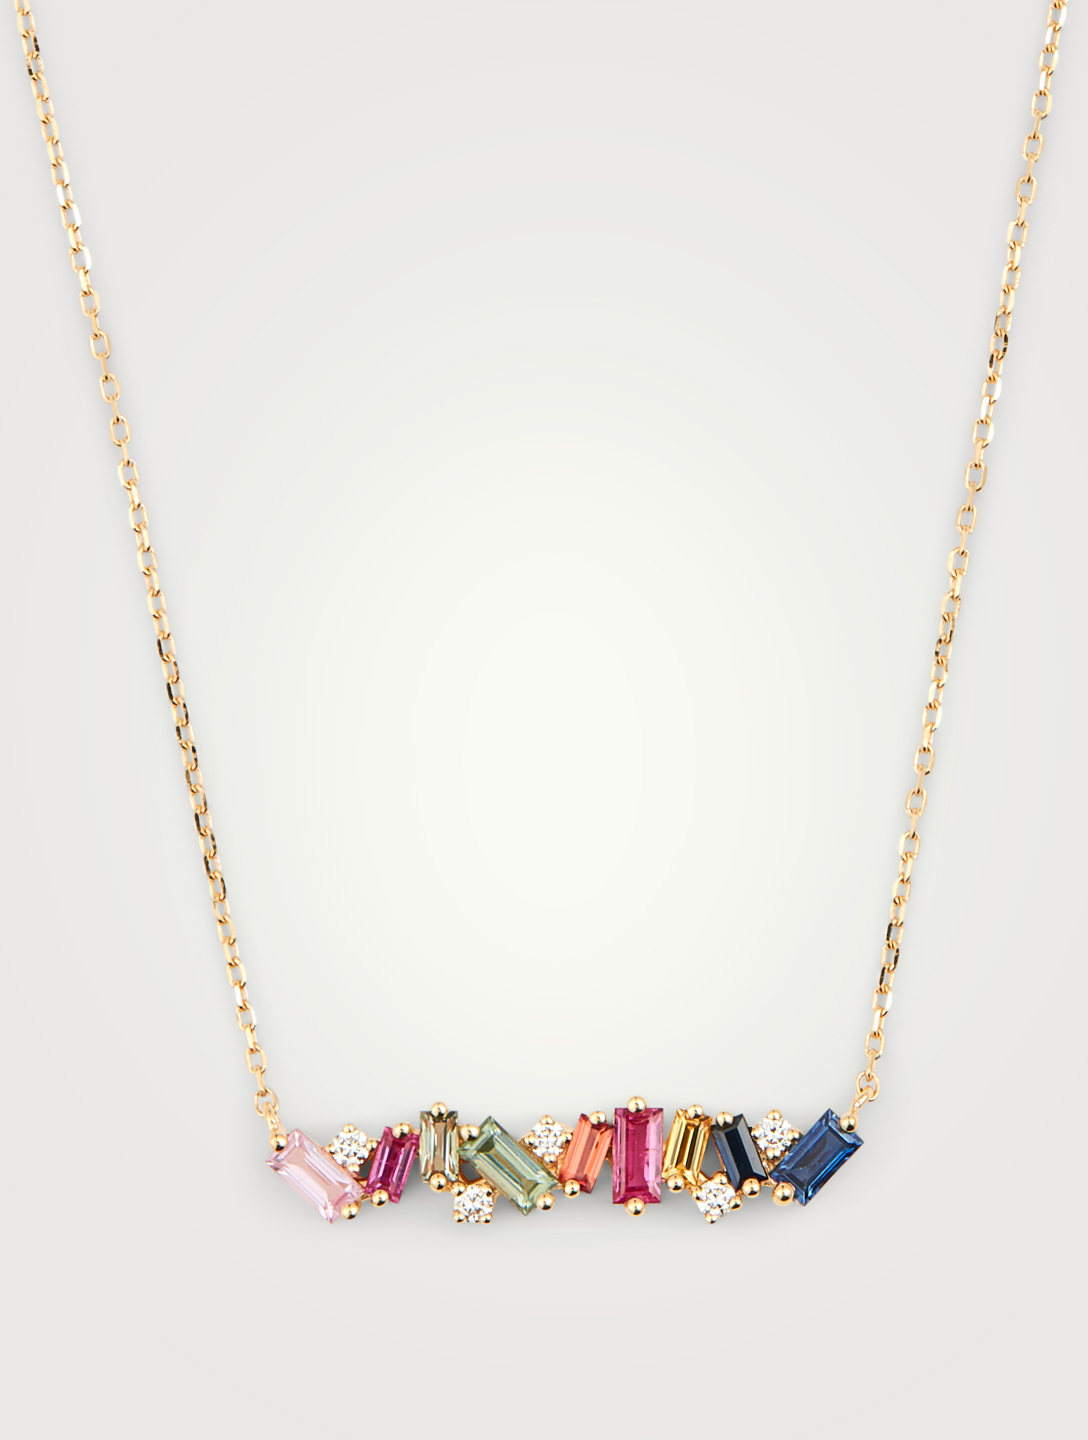 SUZANNE KALAN Rainbow Fireworks 18K Gold Bar Necklace With Diamonds And Sapphires Women's Metallic